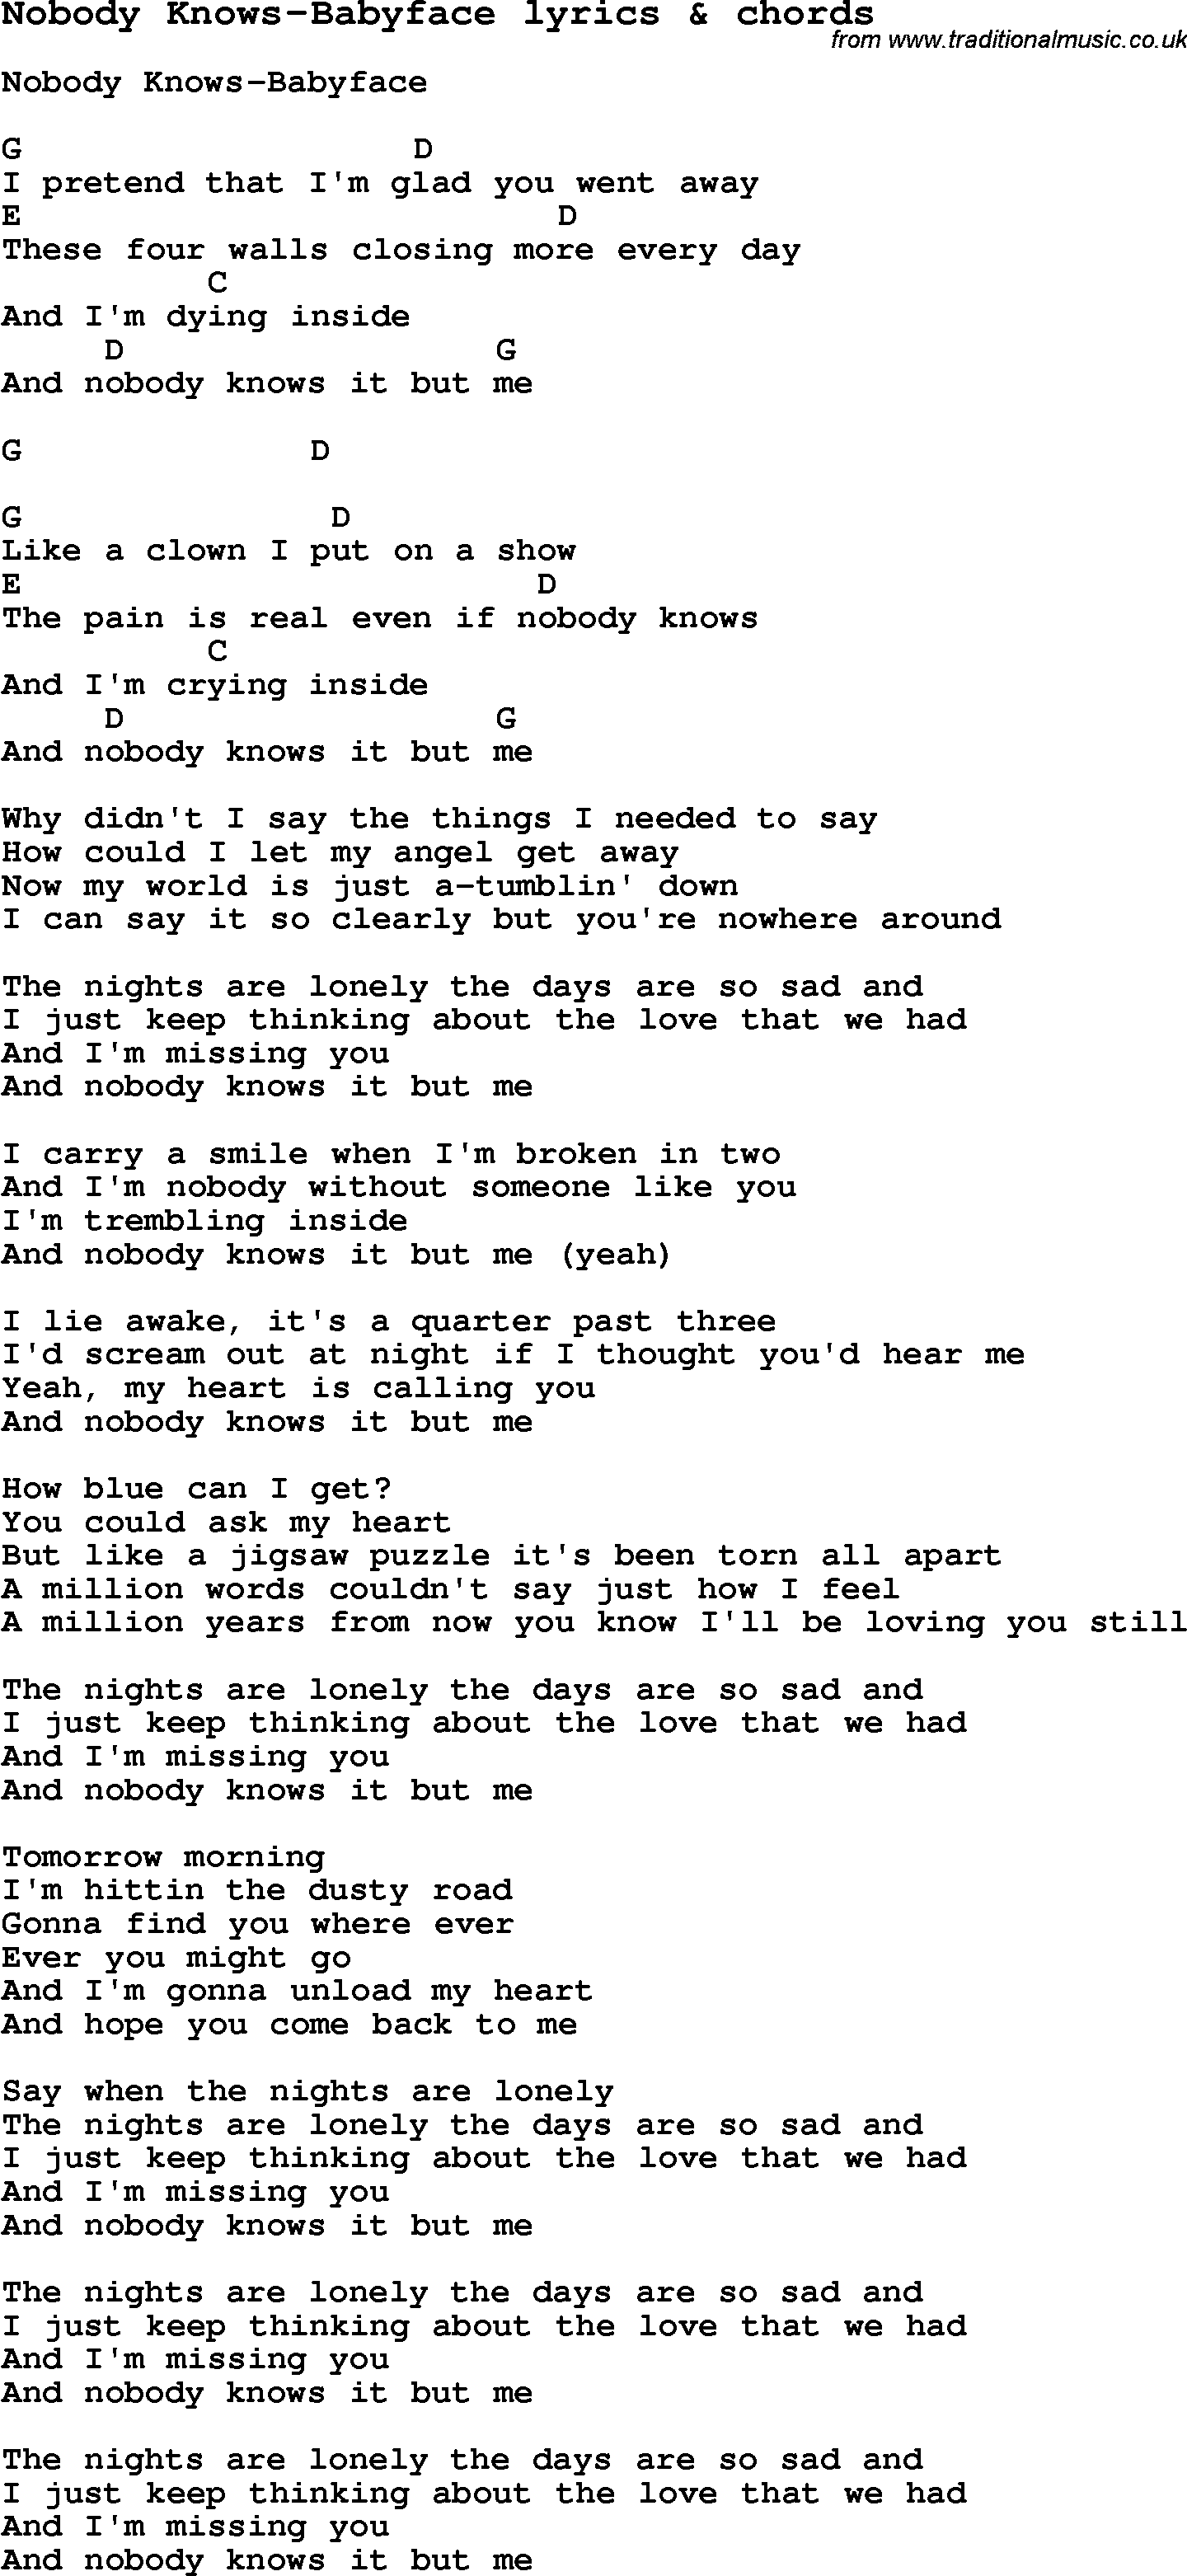 Love song lyrics for nobody knows babyface with chords for love song lyrics for nobody knows babyface with chords for ukulele guitar banjo hexwebz Gallery